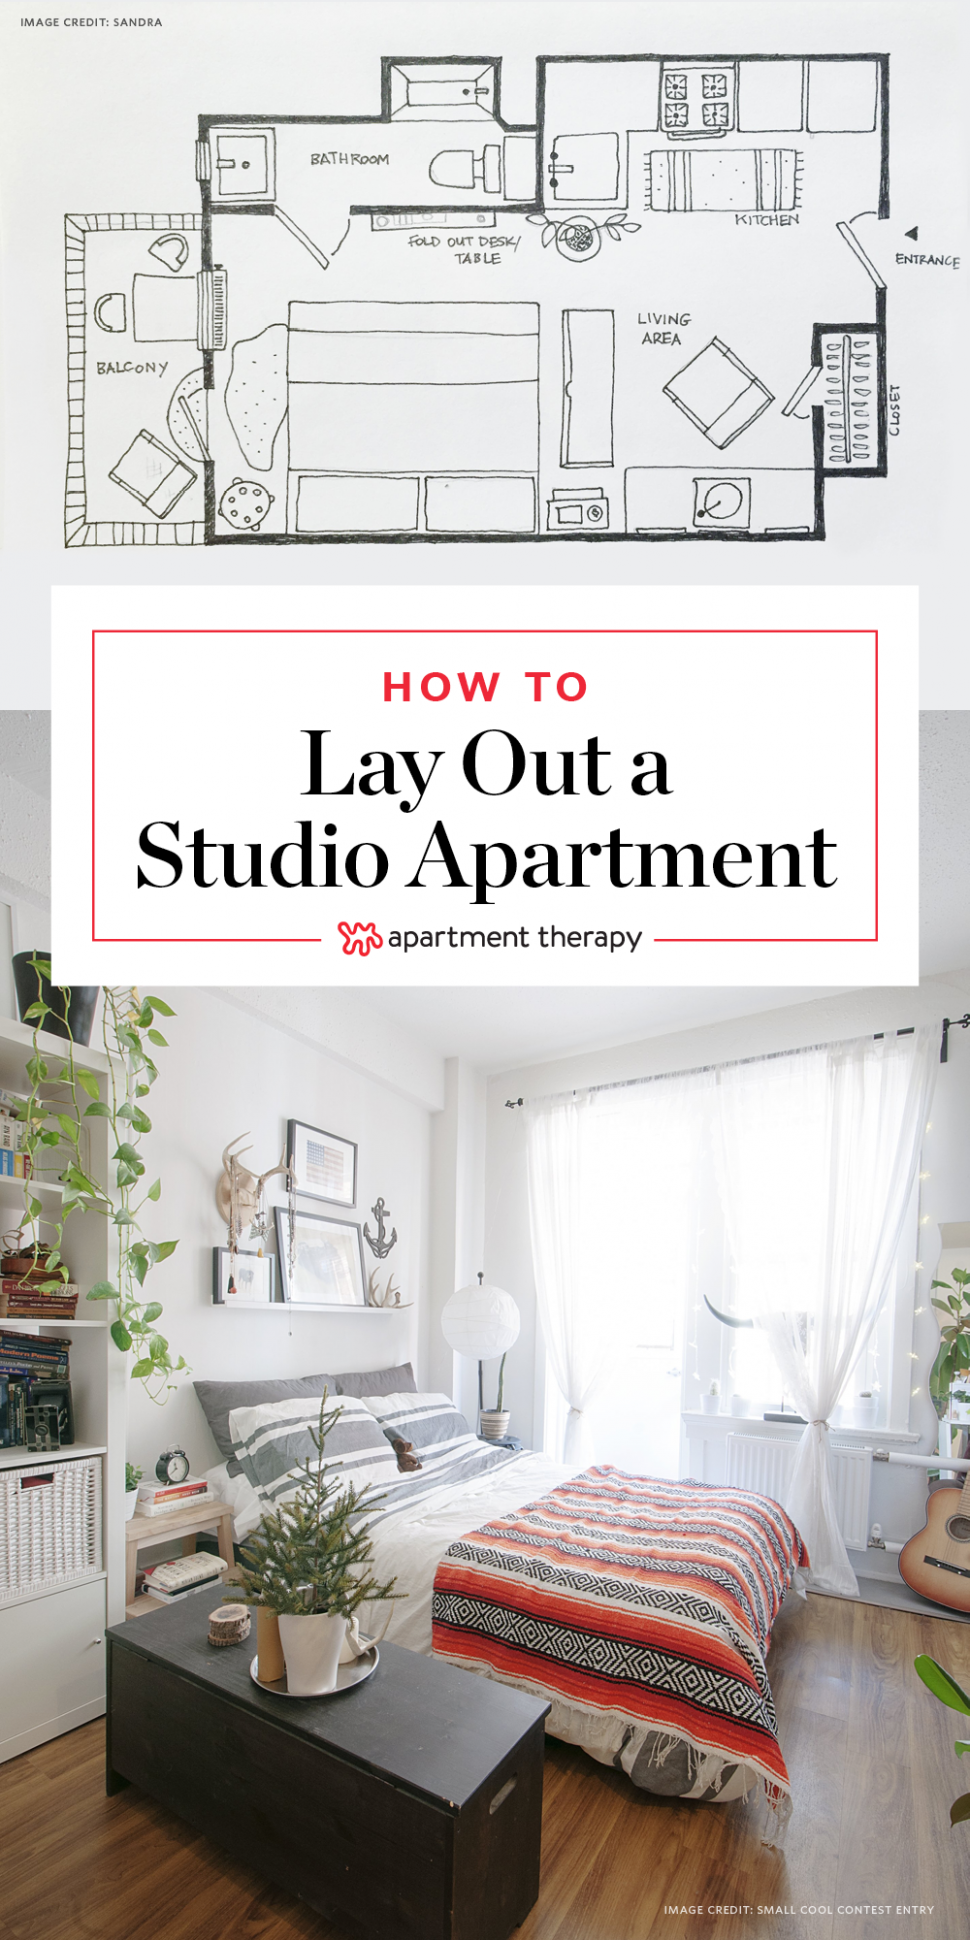 11 Ways to Lay Out a Studio Apartment  Apartment Therapy - Apartment Design Guide Part 5